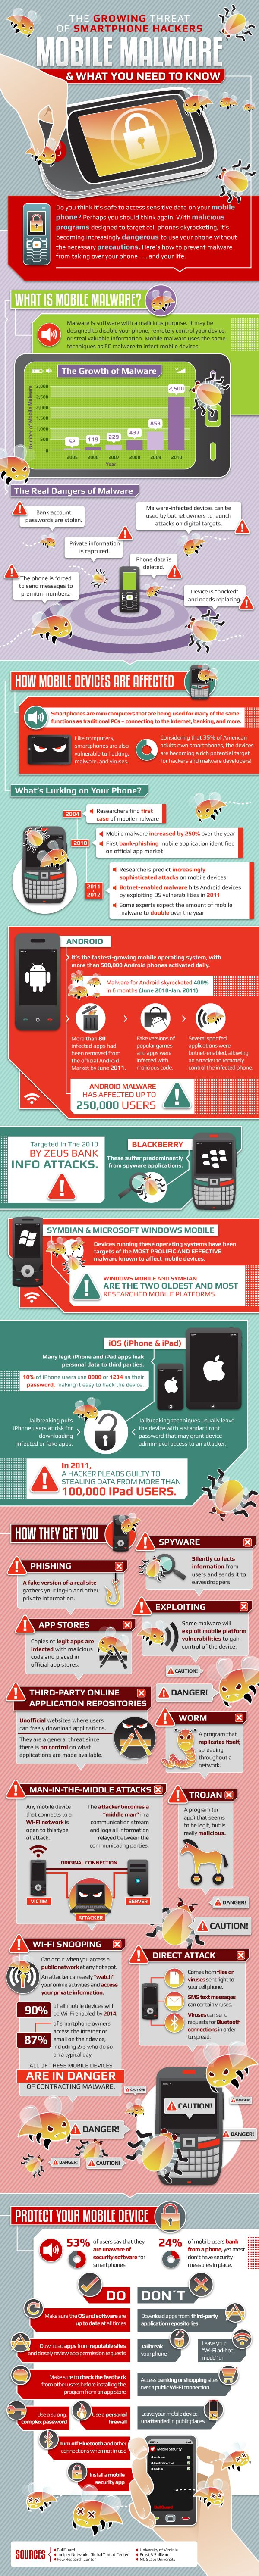 The growth of mobile malware has skyrocketed in the past two years. #infographics